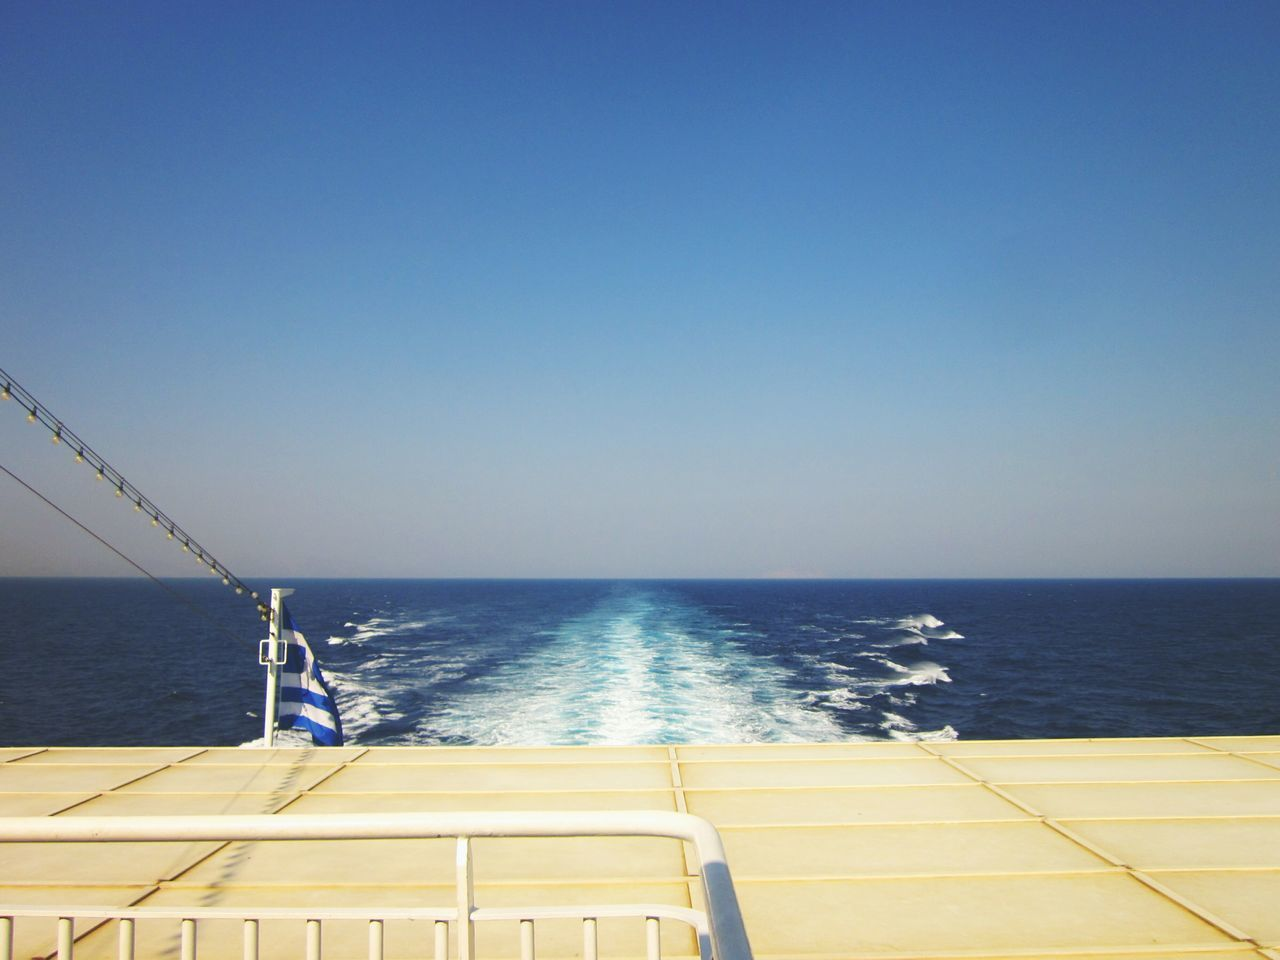 Another day another ferry 🇬🇷🛳BlueStar Horizon Agean Sea Horizon Over Water View From A Ferry The Calmness Within Holiday POV Ferry Life Ferry View Seascape Interrail2016 I Love The Sea Blue Wave Windy Day Clear Sky Summer Day Hot Summer Ocean Seascape Sea Life From My Point Of View Bluestar Ferries Vanishing Point Rule Of Thirds Endlessness Capturing Motion